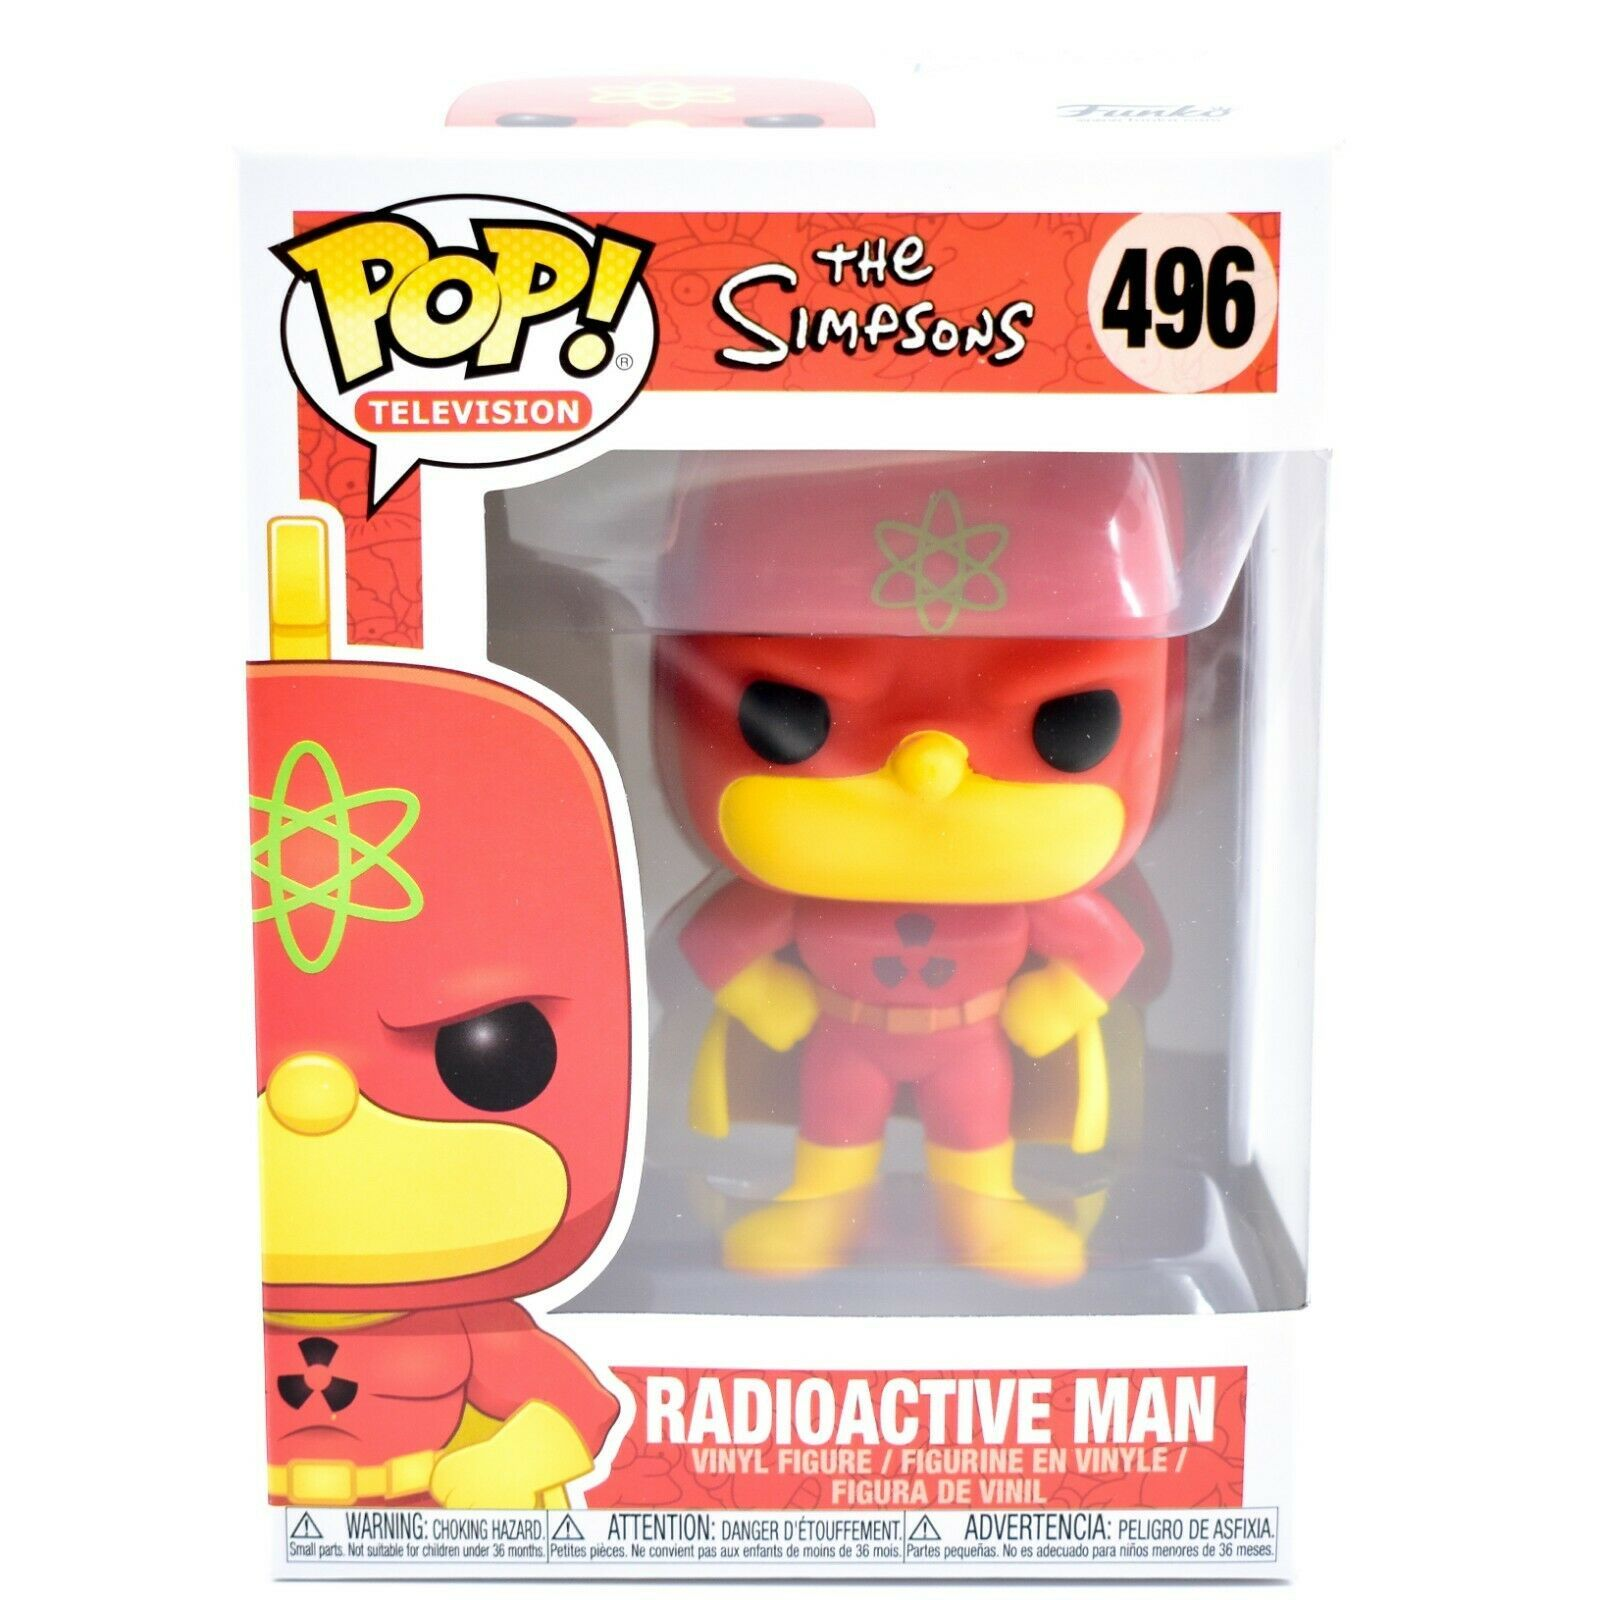 Funko Pop! Television The Simpsons Homer as Radioactive Man #496 Vinyl Figure